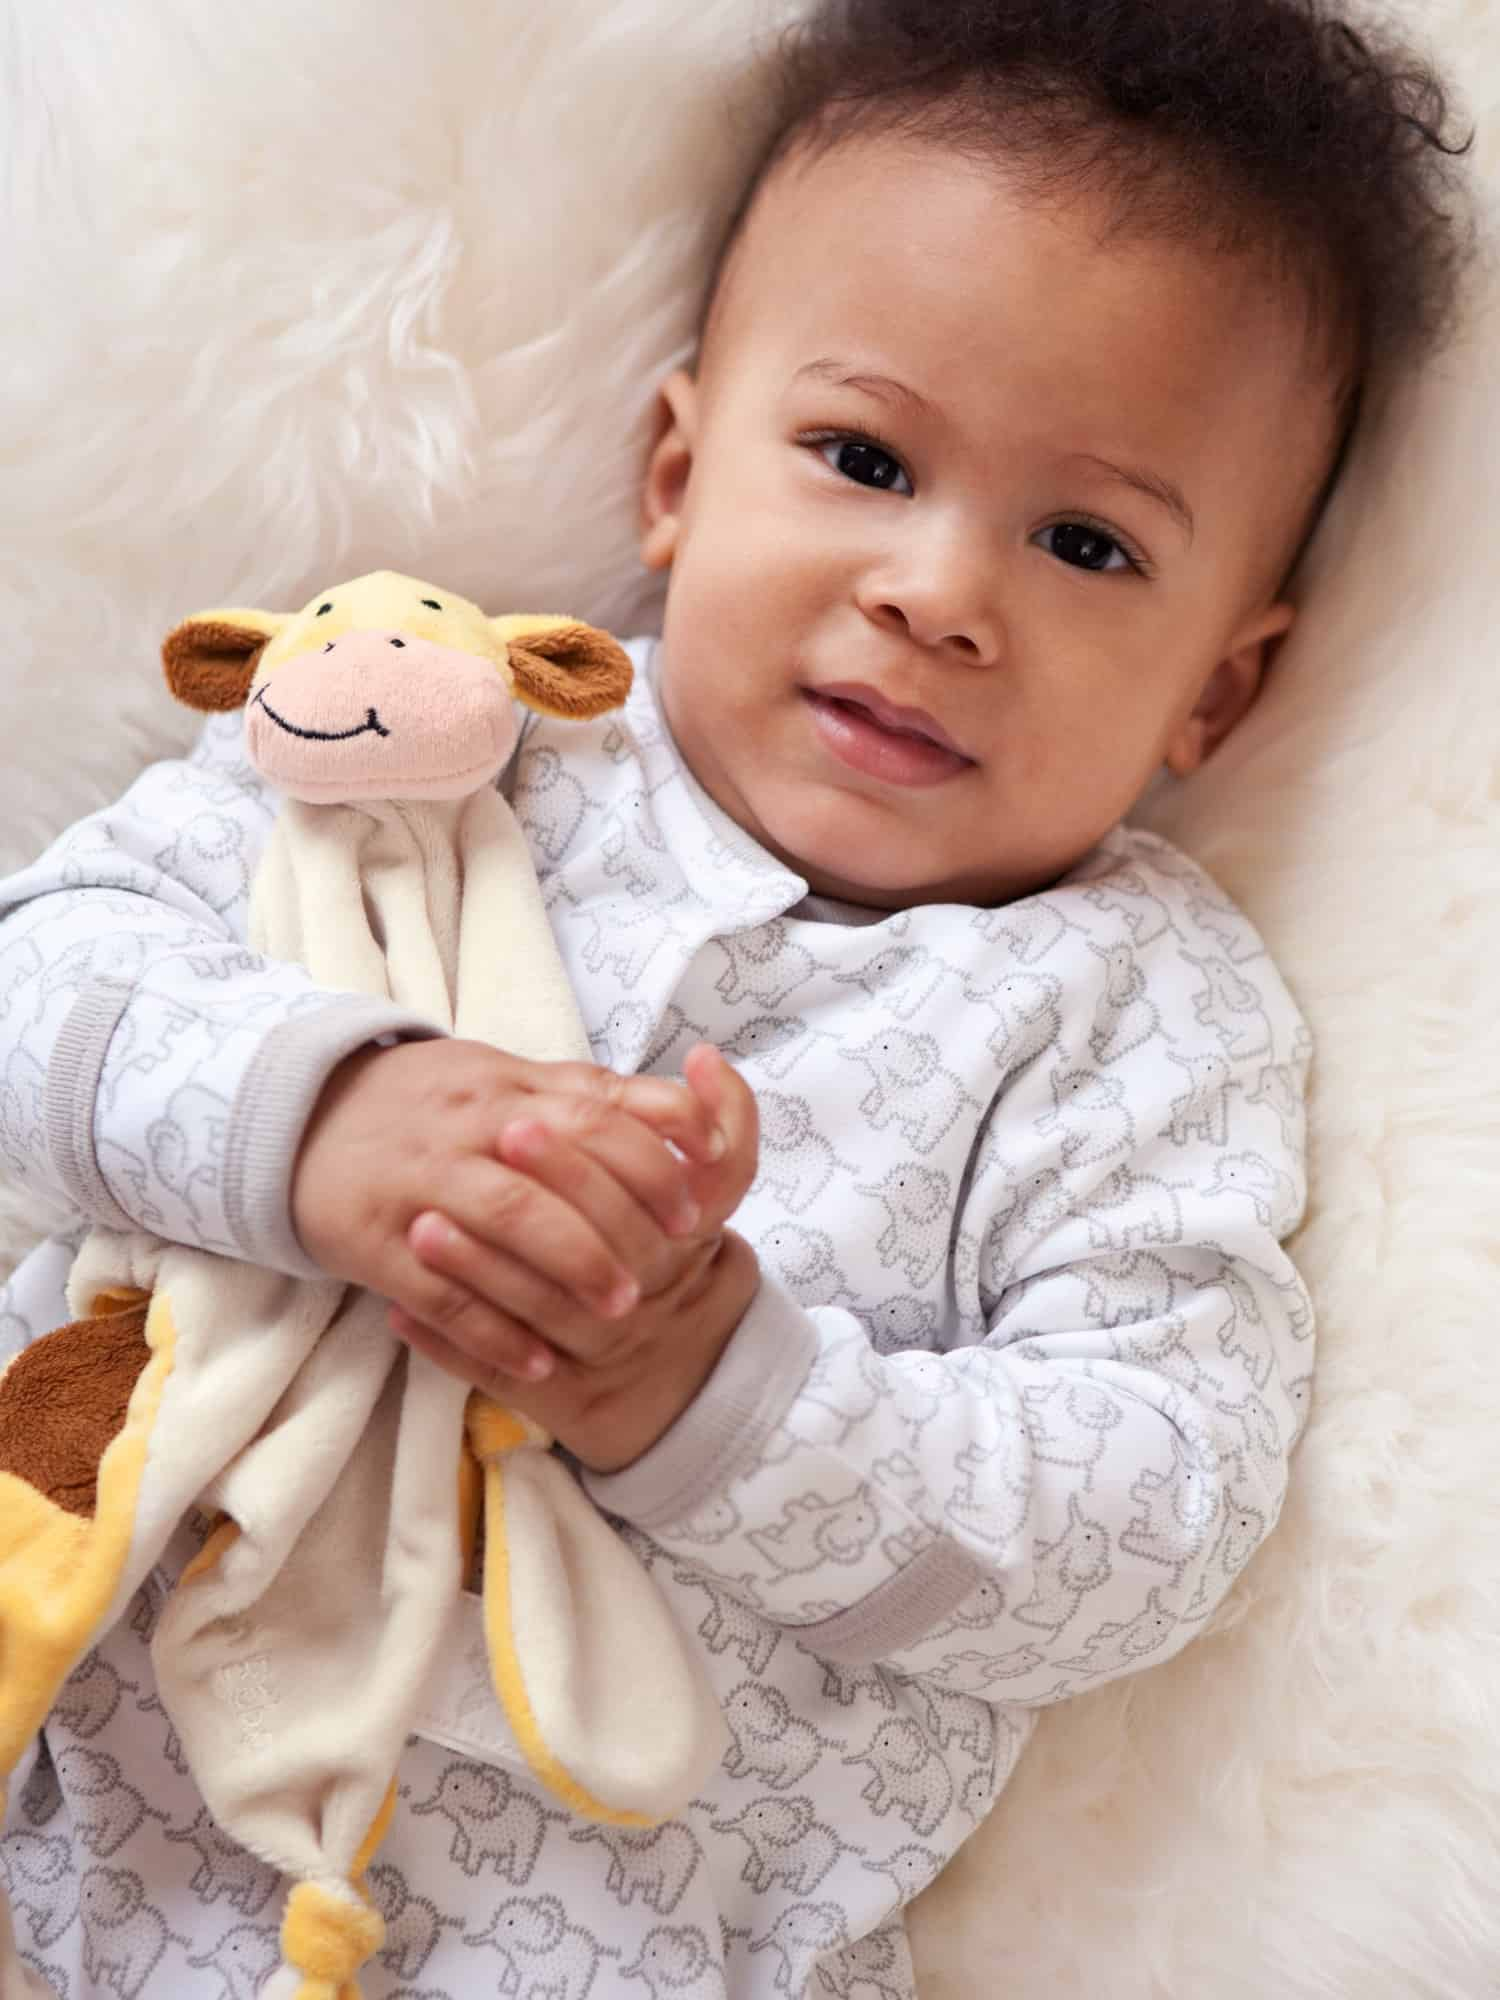 Baby holding extra soft and cuddly giraffe comforter.